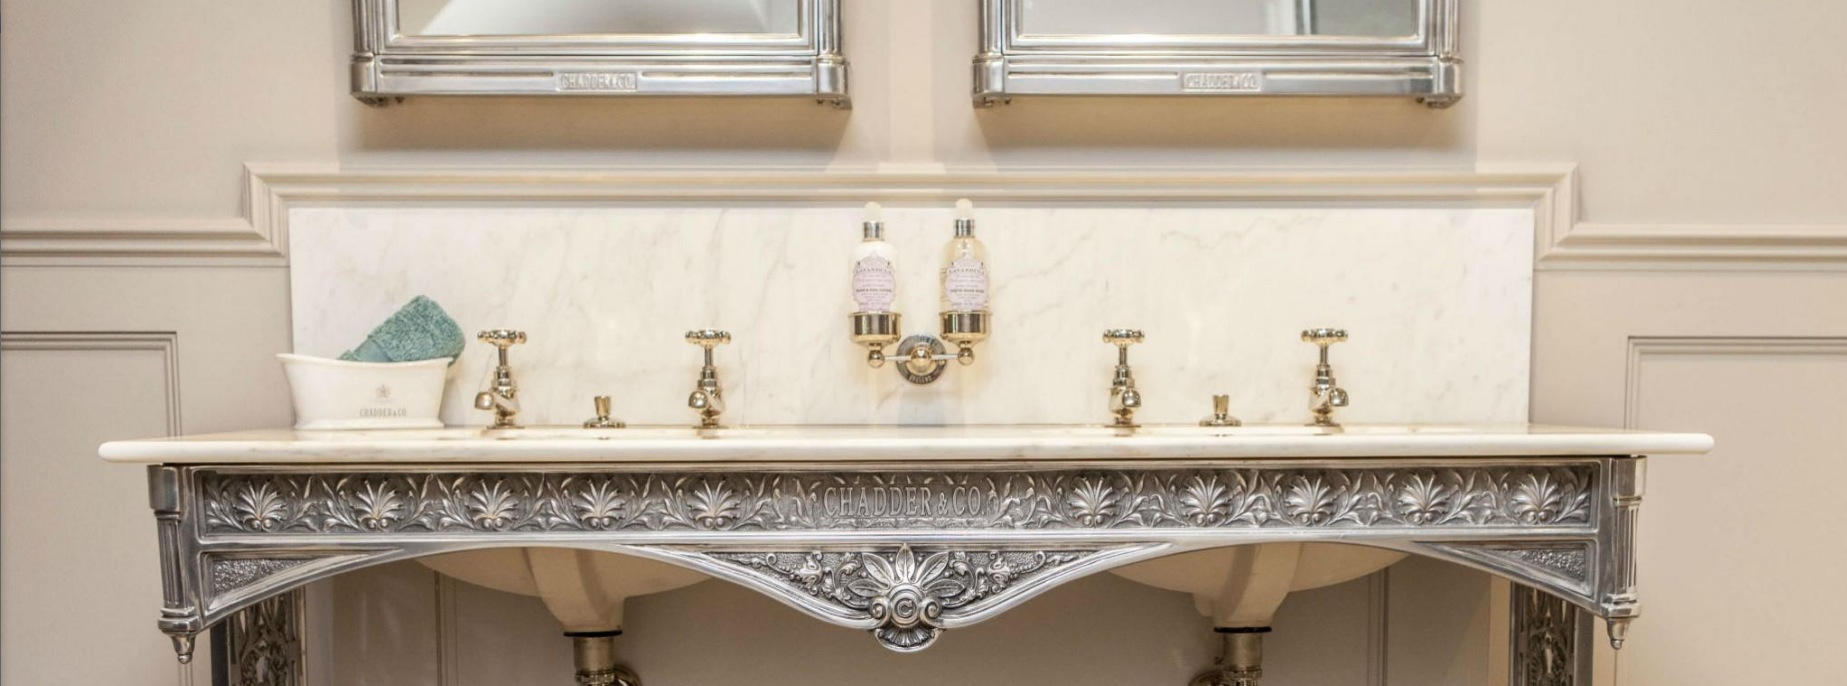 luxury bathroom fittings chadder & co double pedestal sink made in england